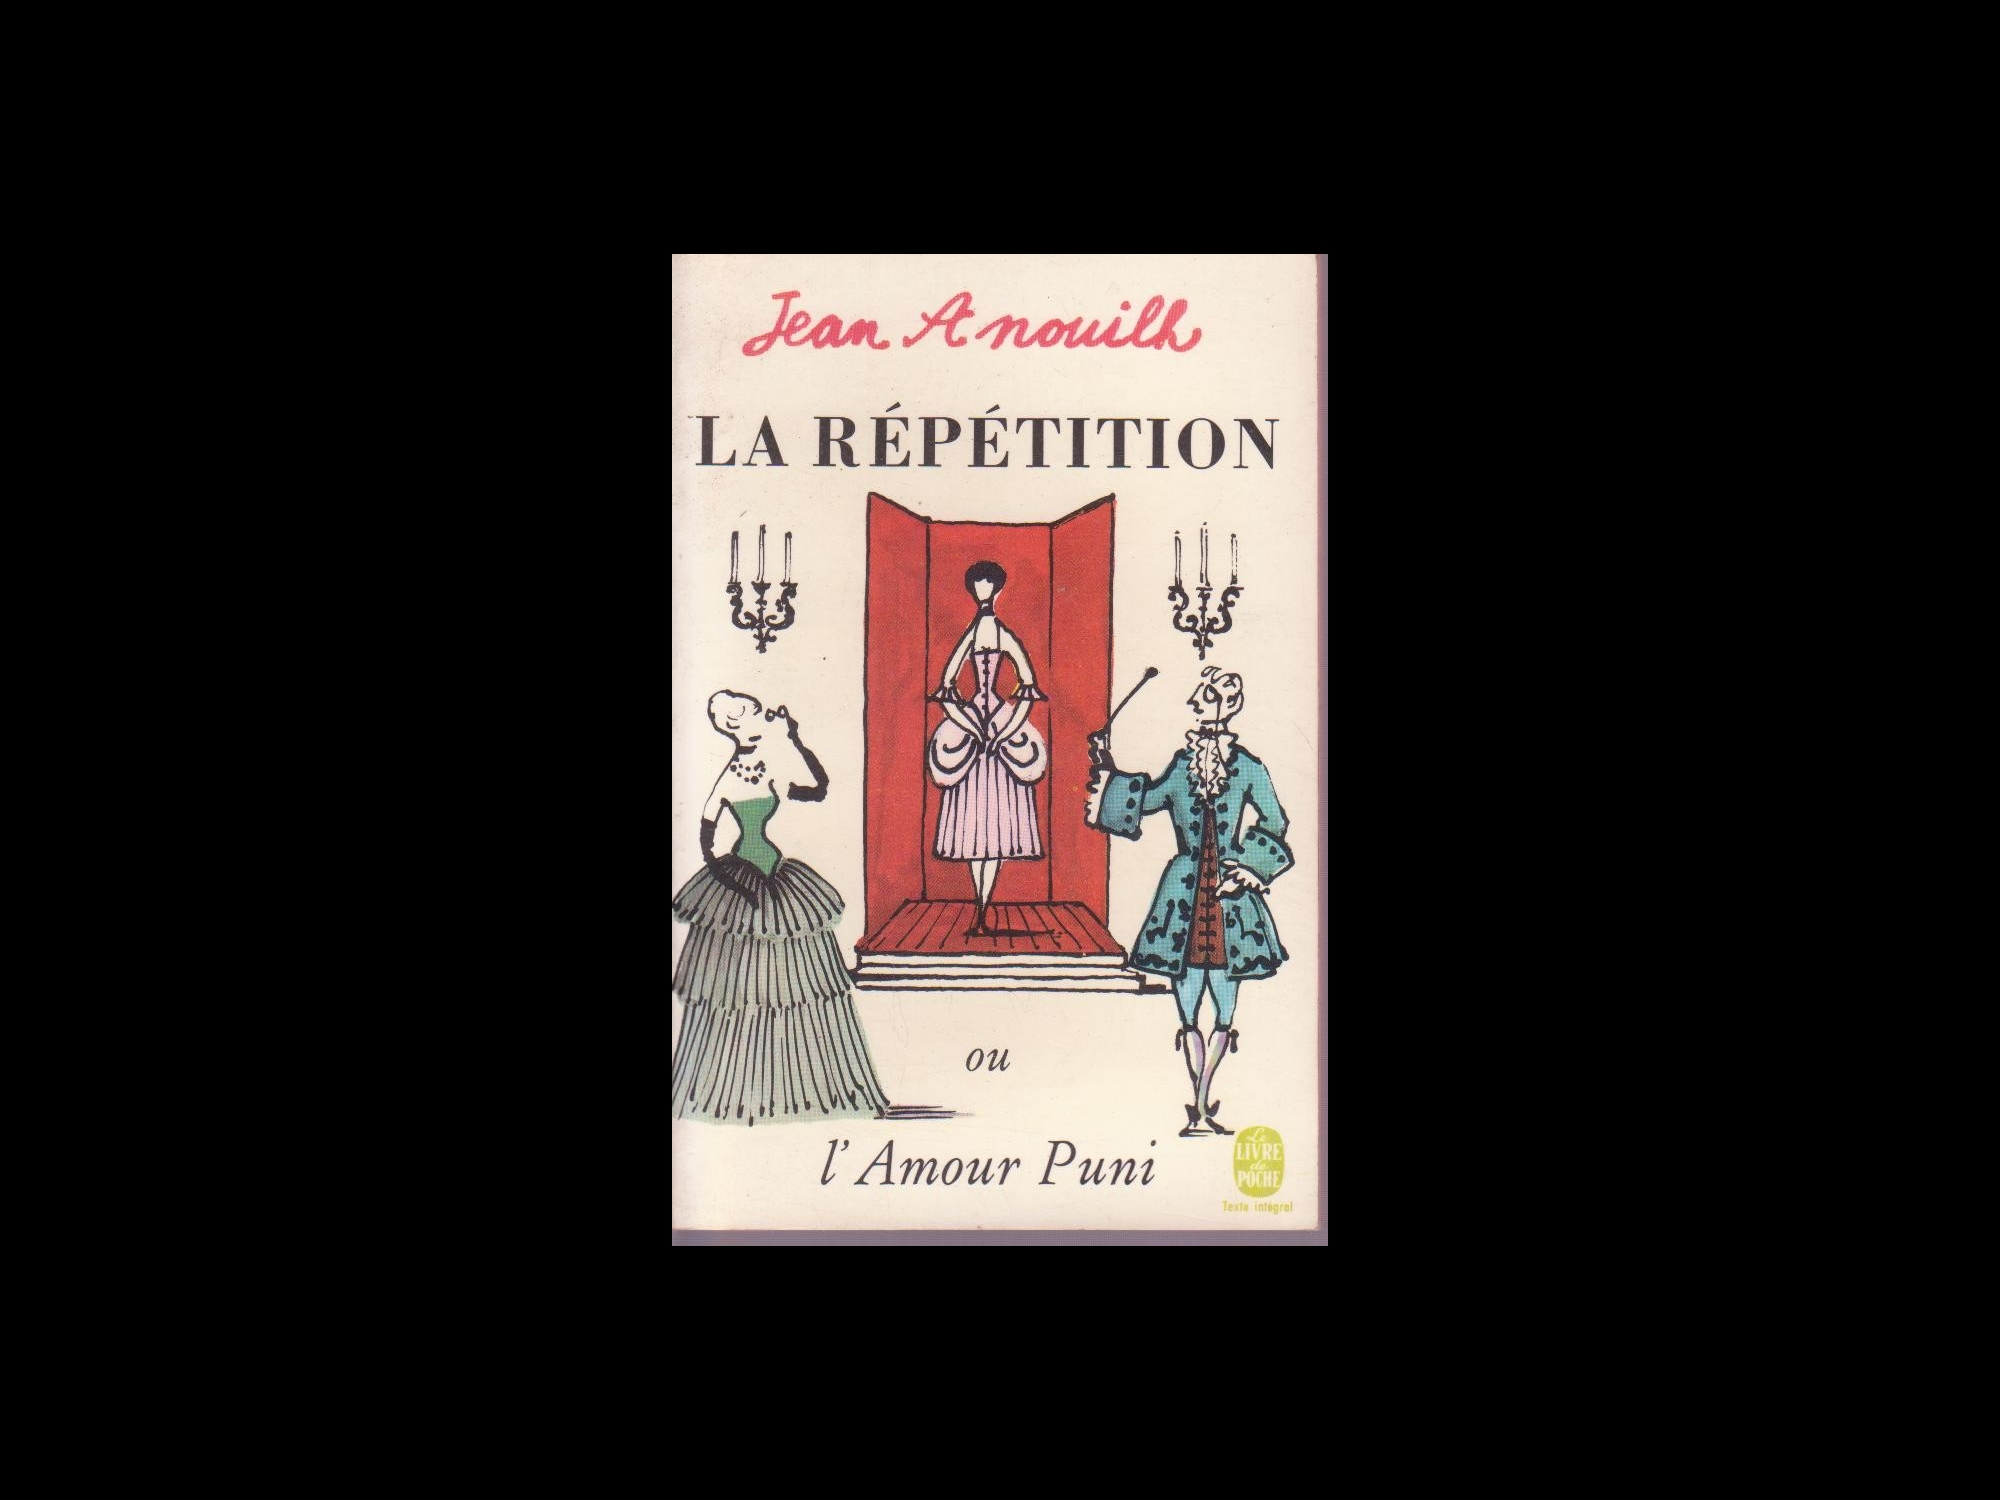 La Repetition Ou L U0026 39 Amour Puni Jean Anouilh La Table Ronde